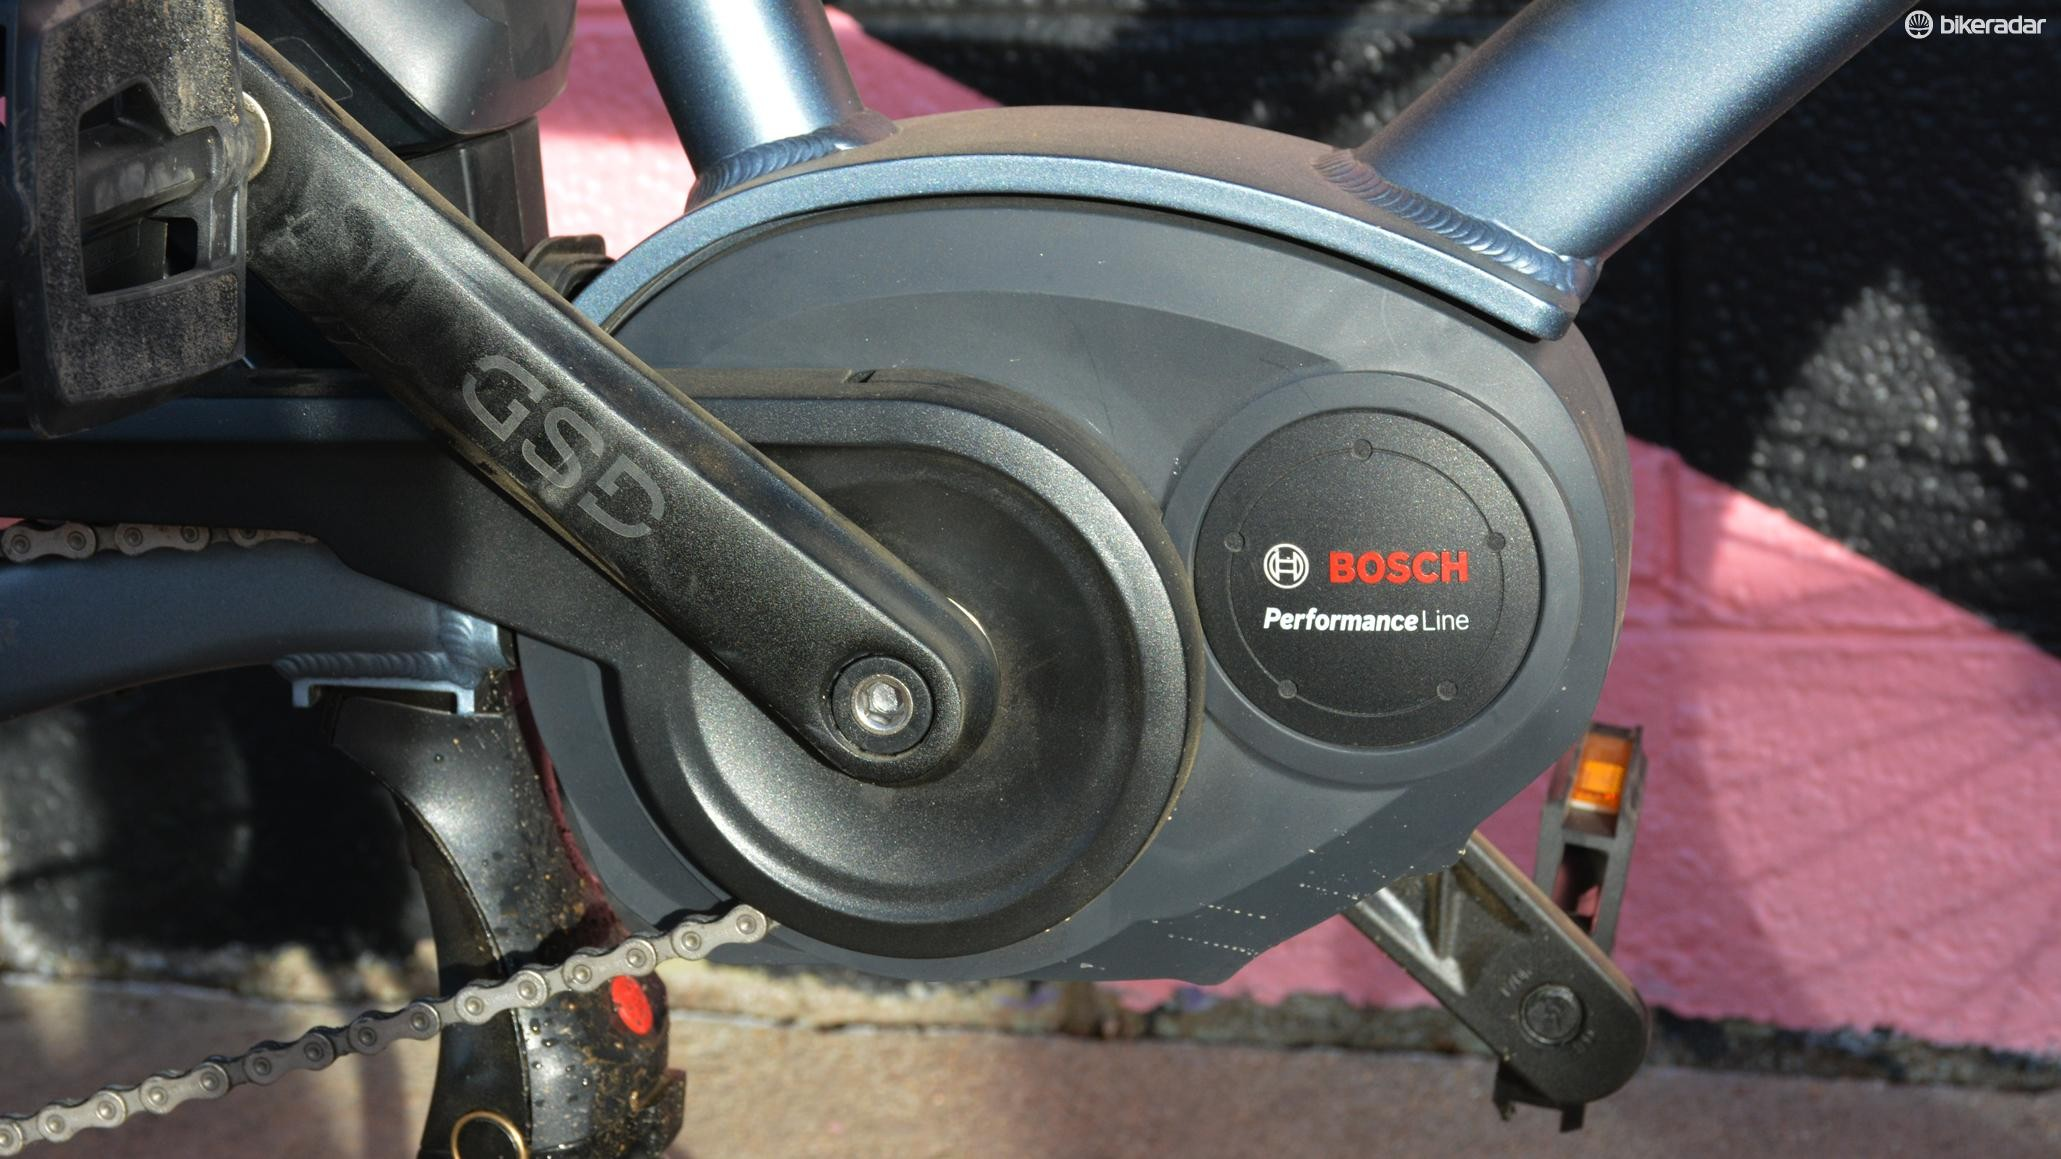 A 400Wh Bosch electric motor provides plenty of power and range